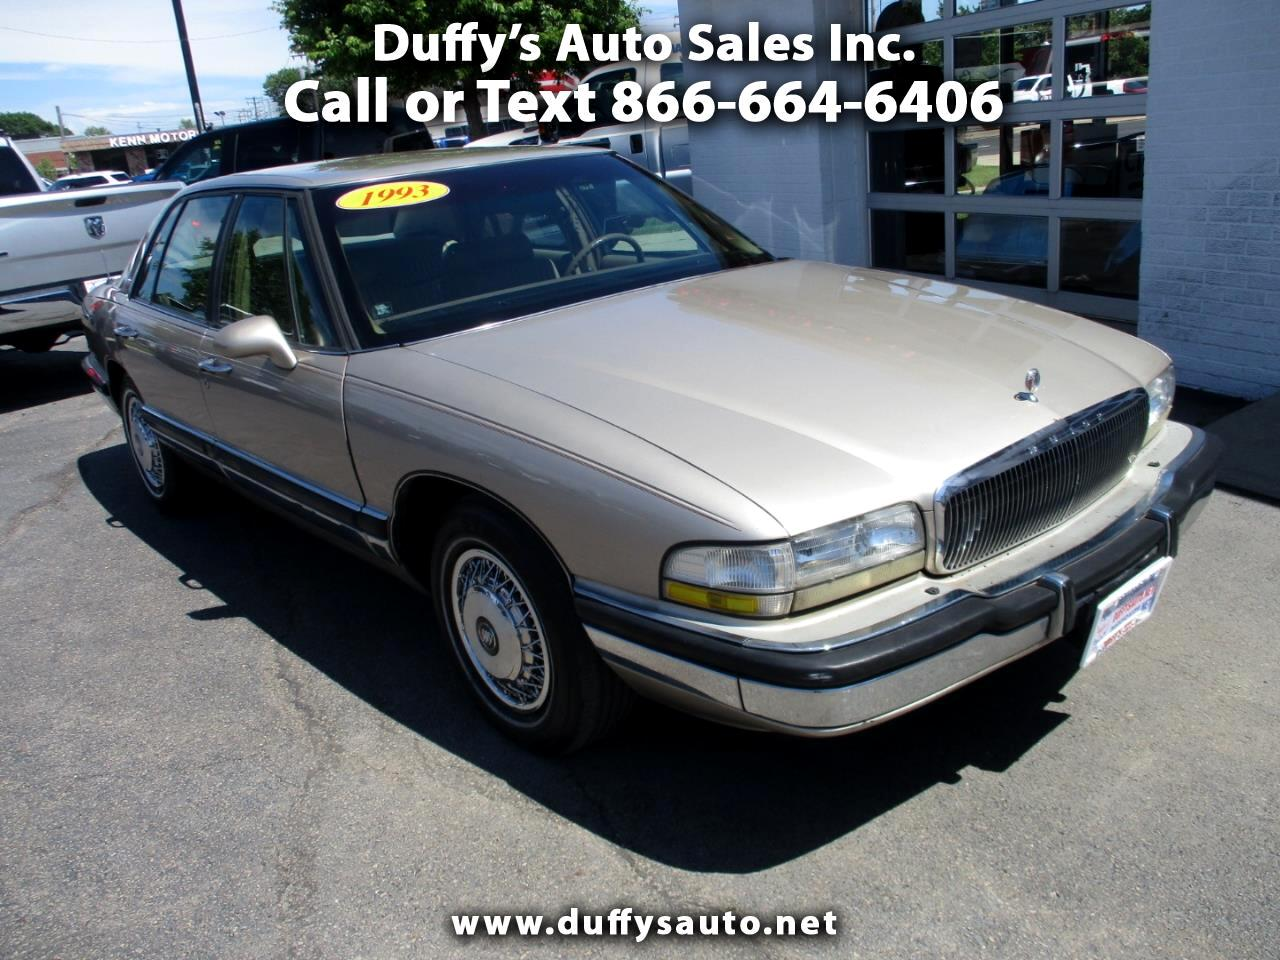 1993 Buick Park Avenue 4dr Sedan